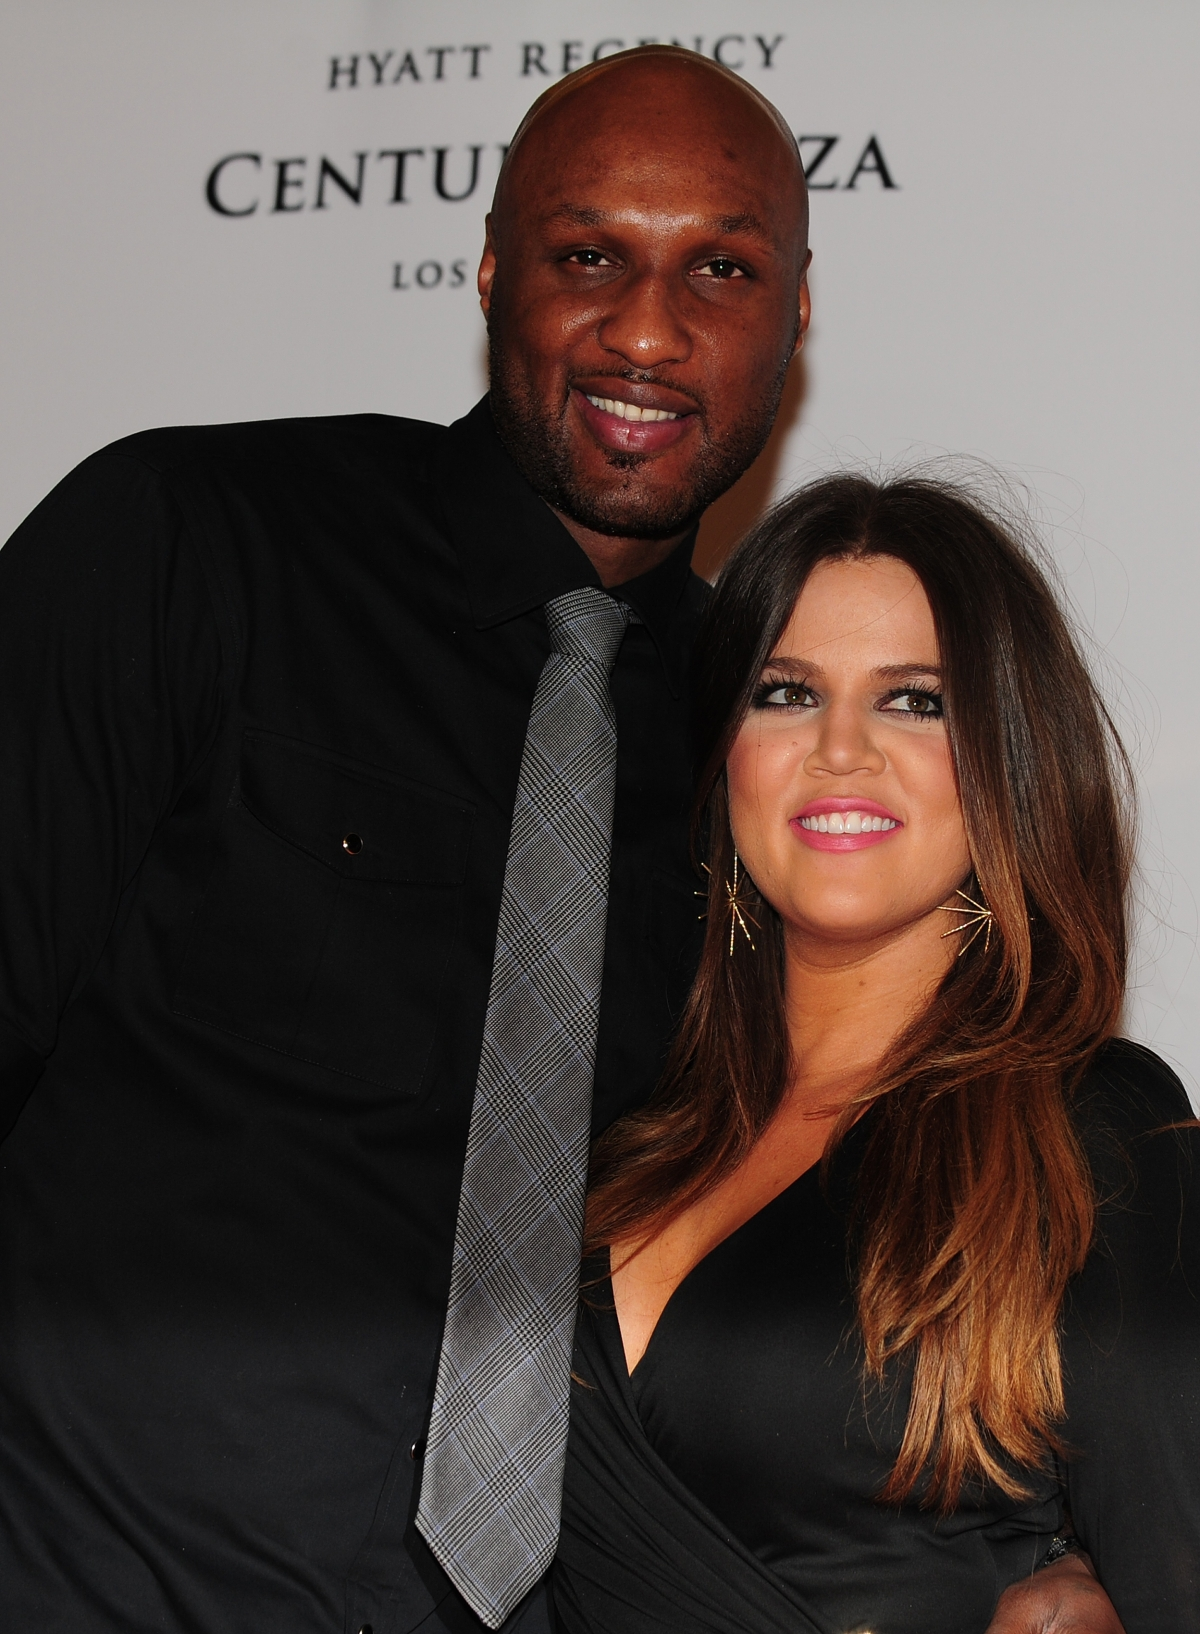 Khloe and Lamar